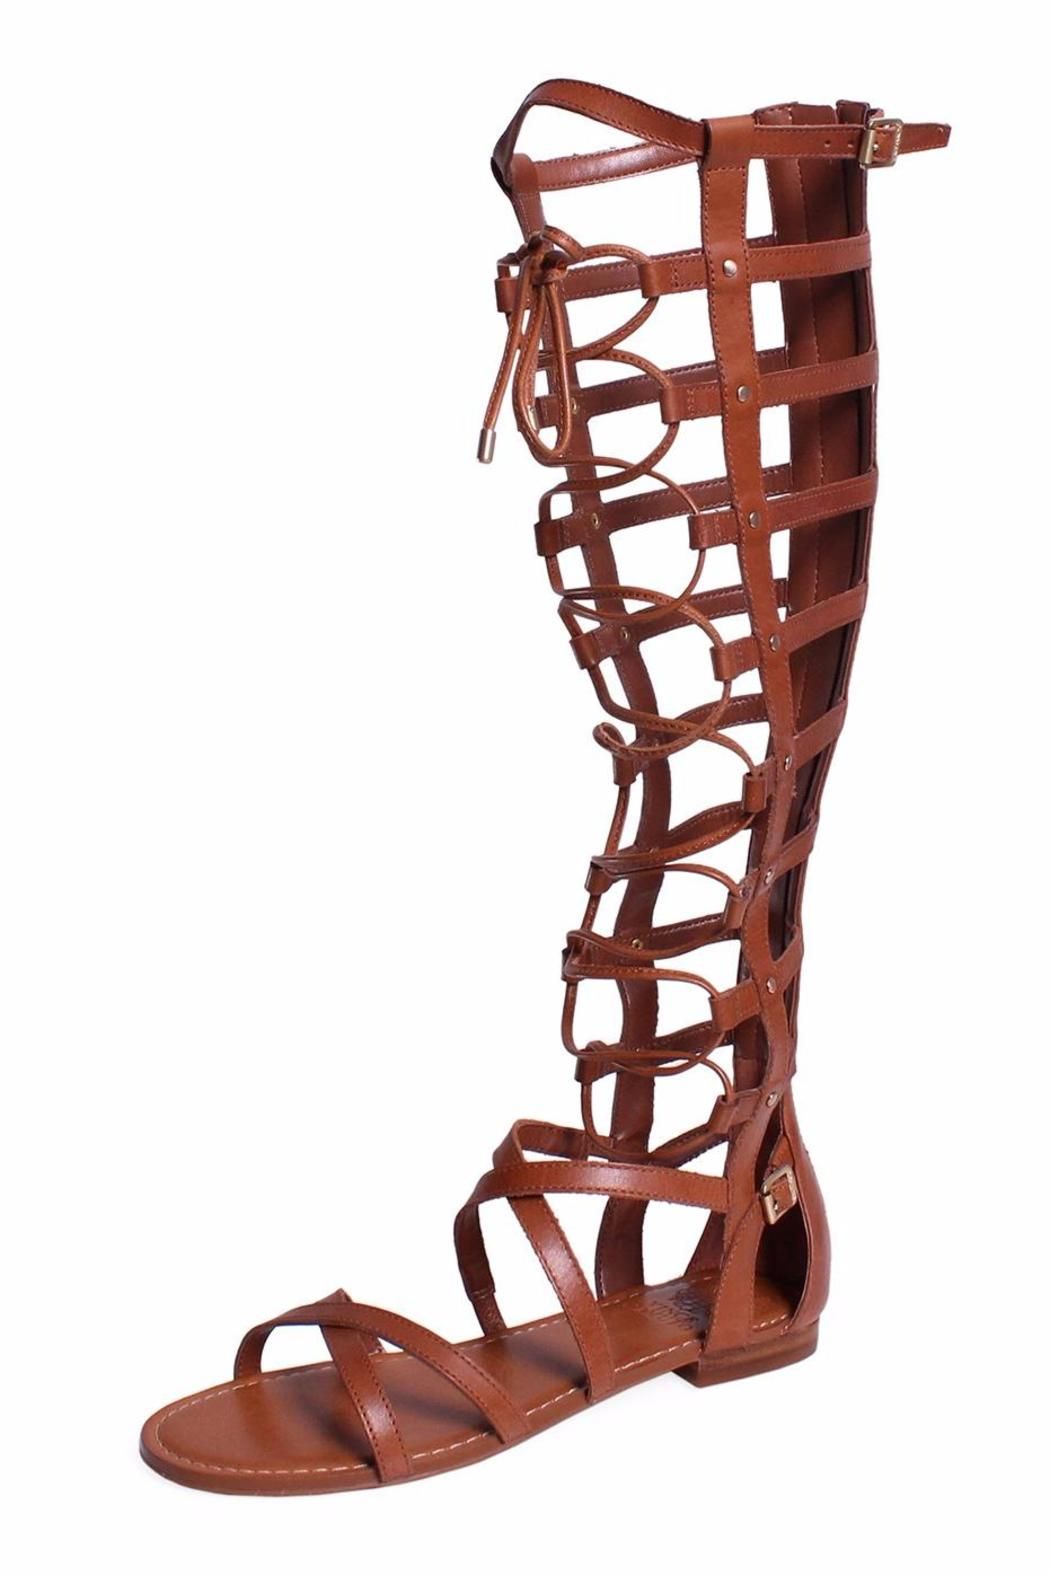 54850dd4882 Vince Camuto Mesta Gladiator Sandal from New York by Violet s of ...